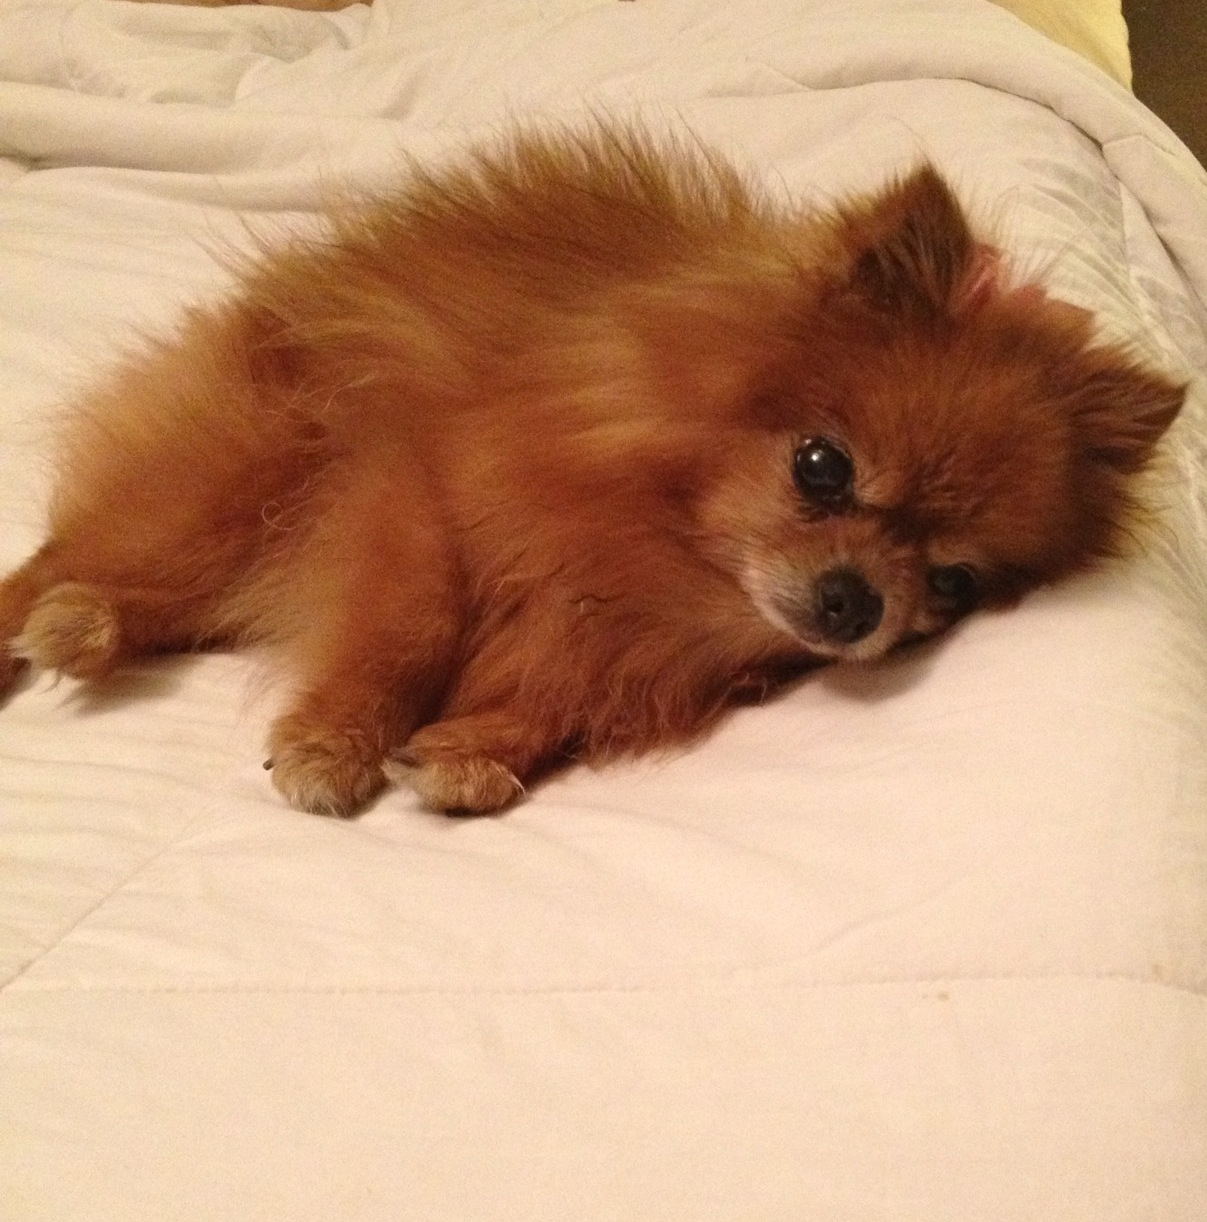 Does Your Pomeranian Accidentally Fall From The Bed